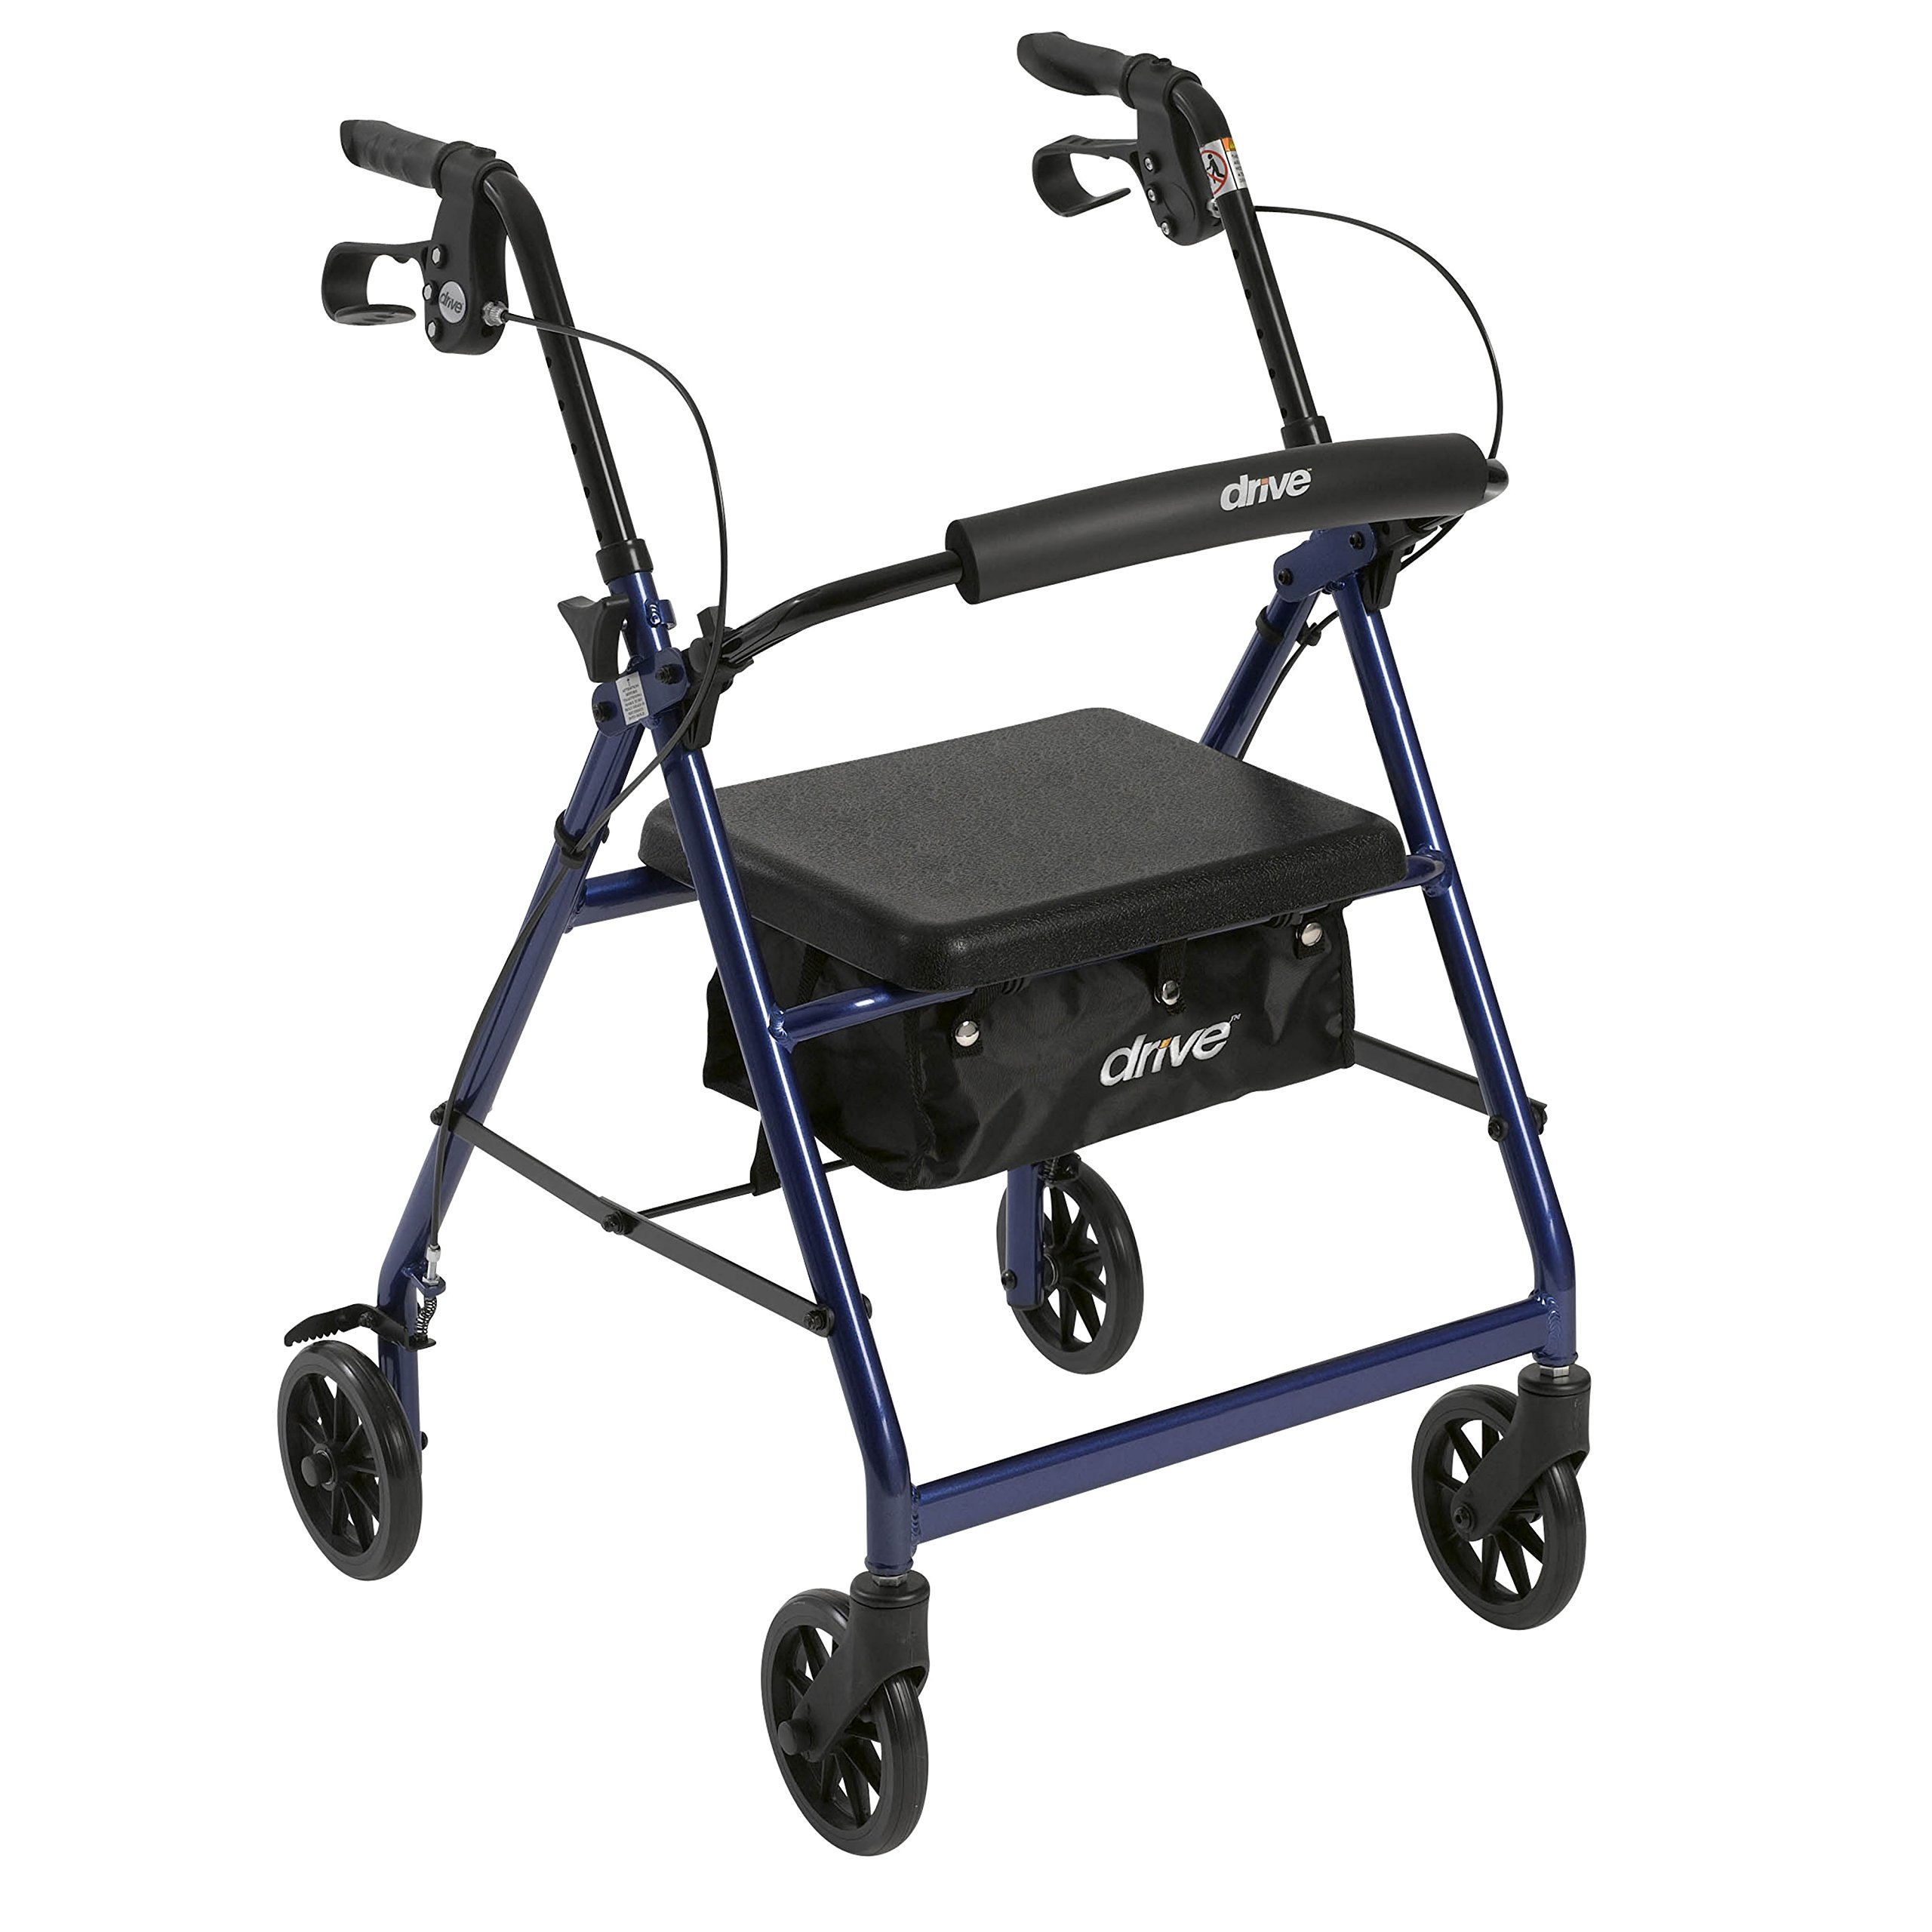 Drive Medical Aluminum Rollator Walker Fold Up and Removable Back Support, Padded Seat, 6'' Wheels, Blue by Drive Medical